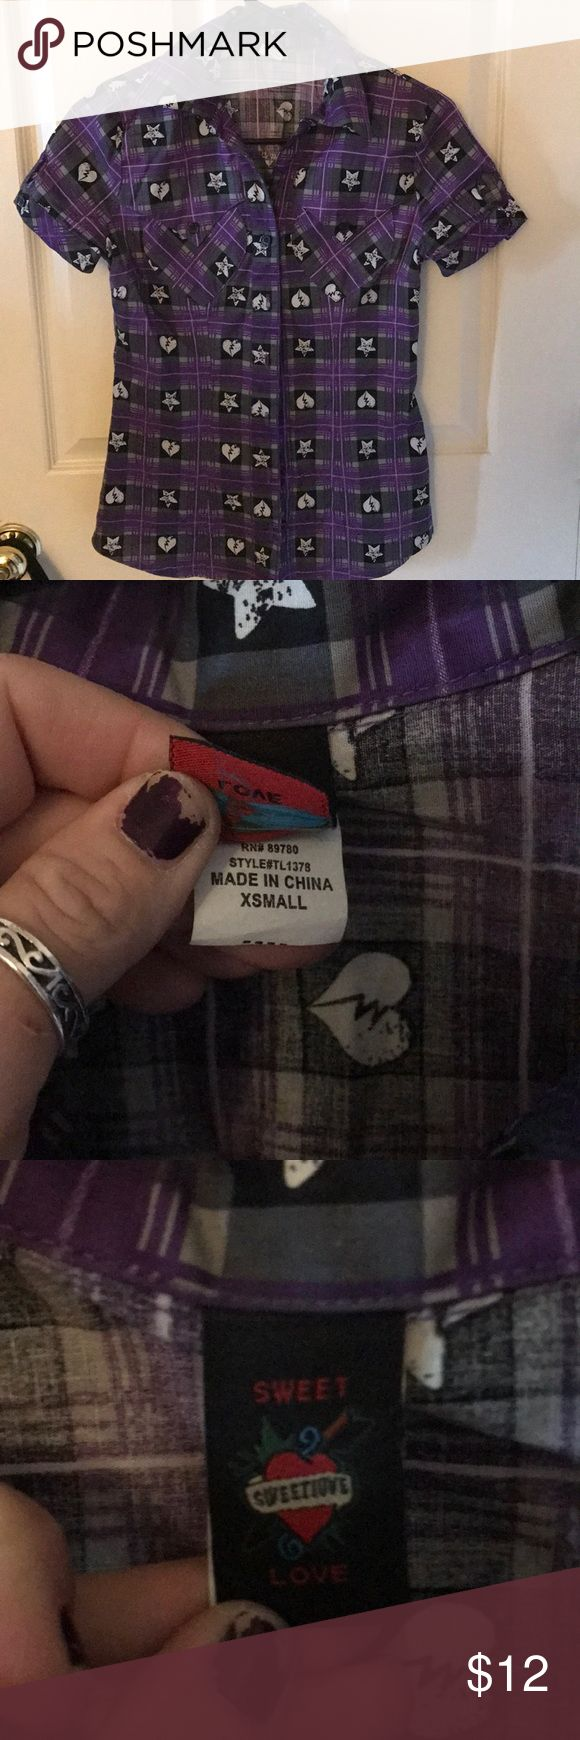 Purple Heart and star shirt size xsmall Short sleeve button up purple plaid shirt with hearts and stars   Xsmall  From hot topic   Worn only a couple times. In like new condition Hot Topic Tops Button Down Shirts